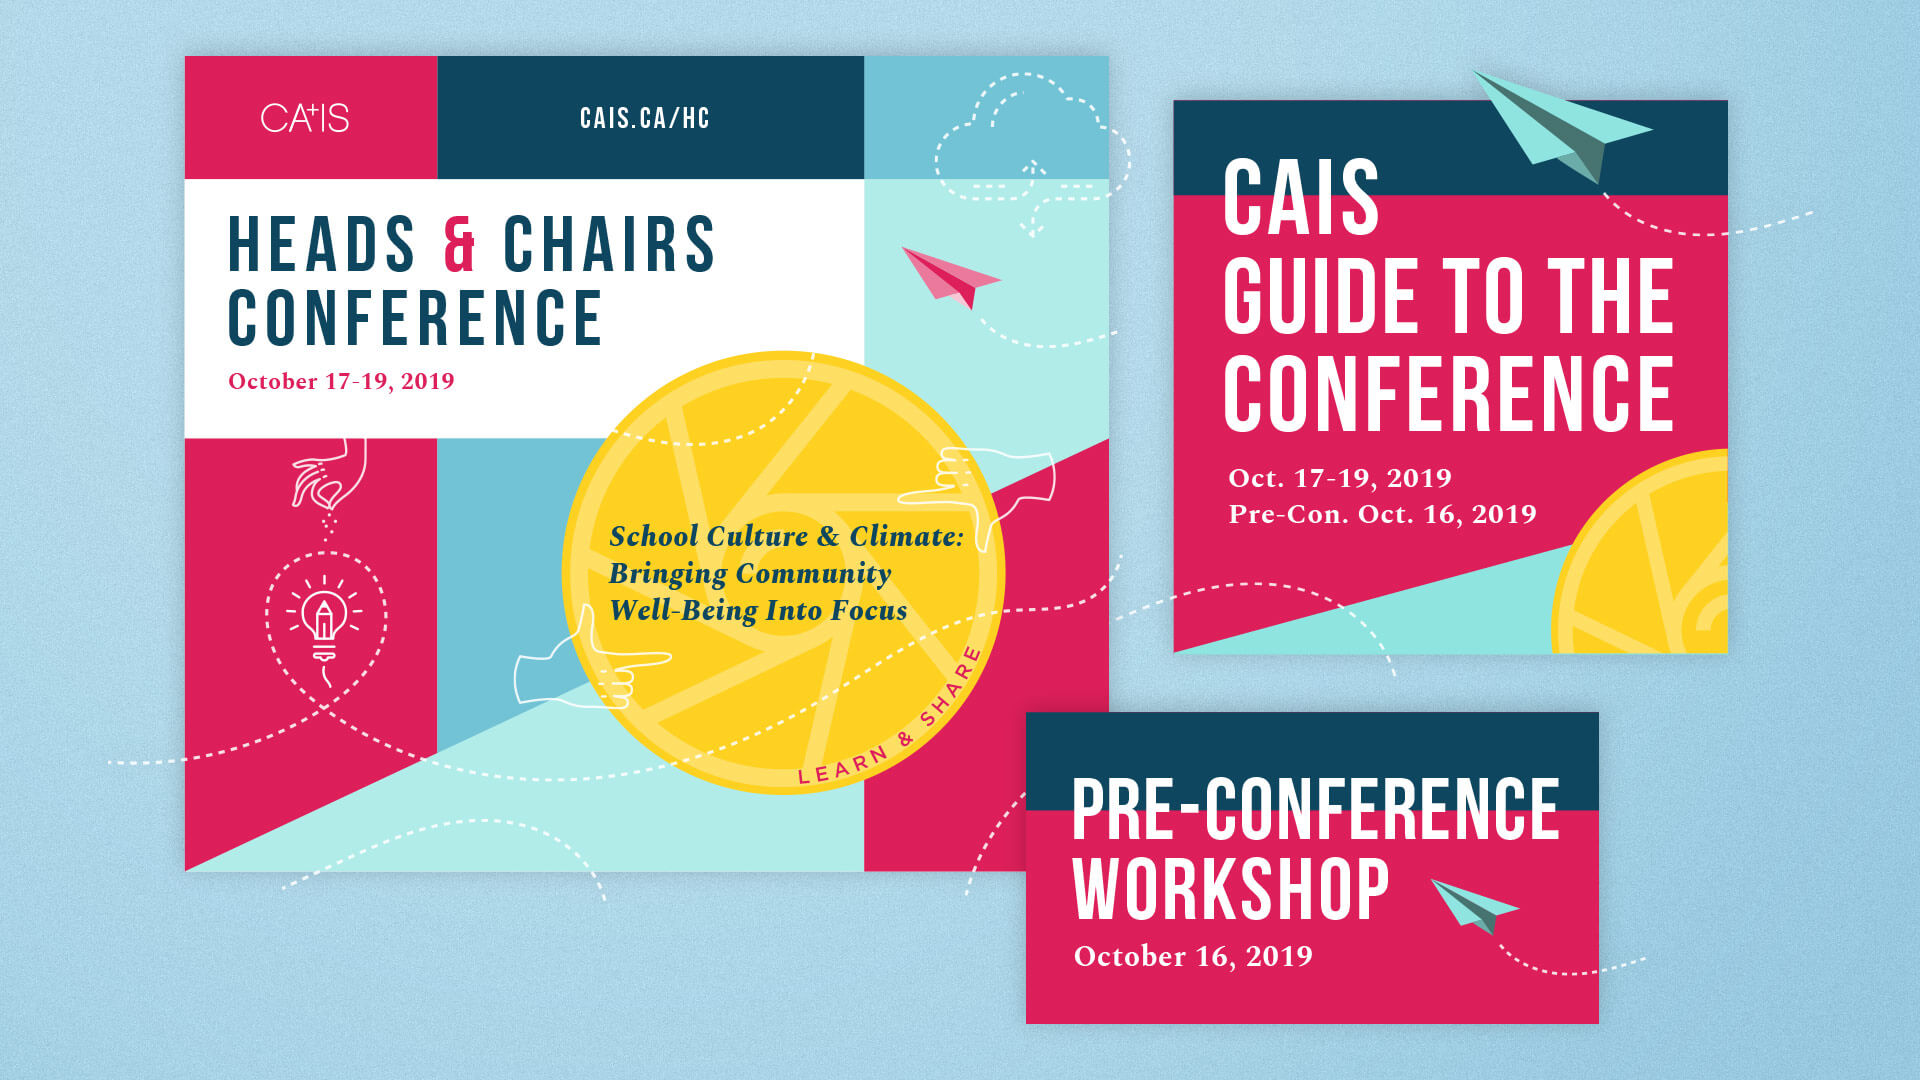 CAIS Heads & Chairs Conference Visual Identity